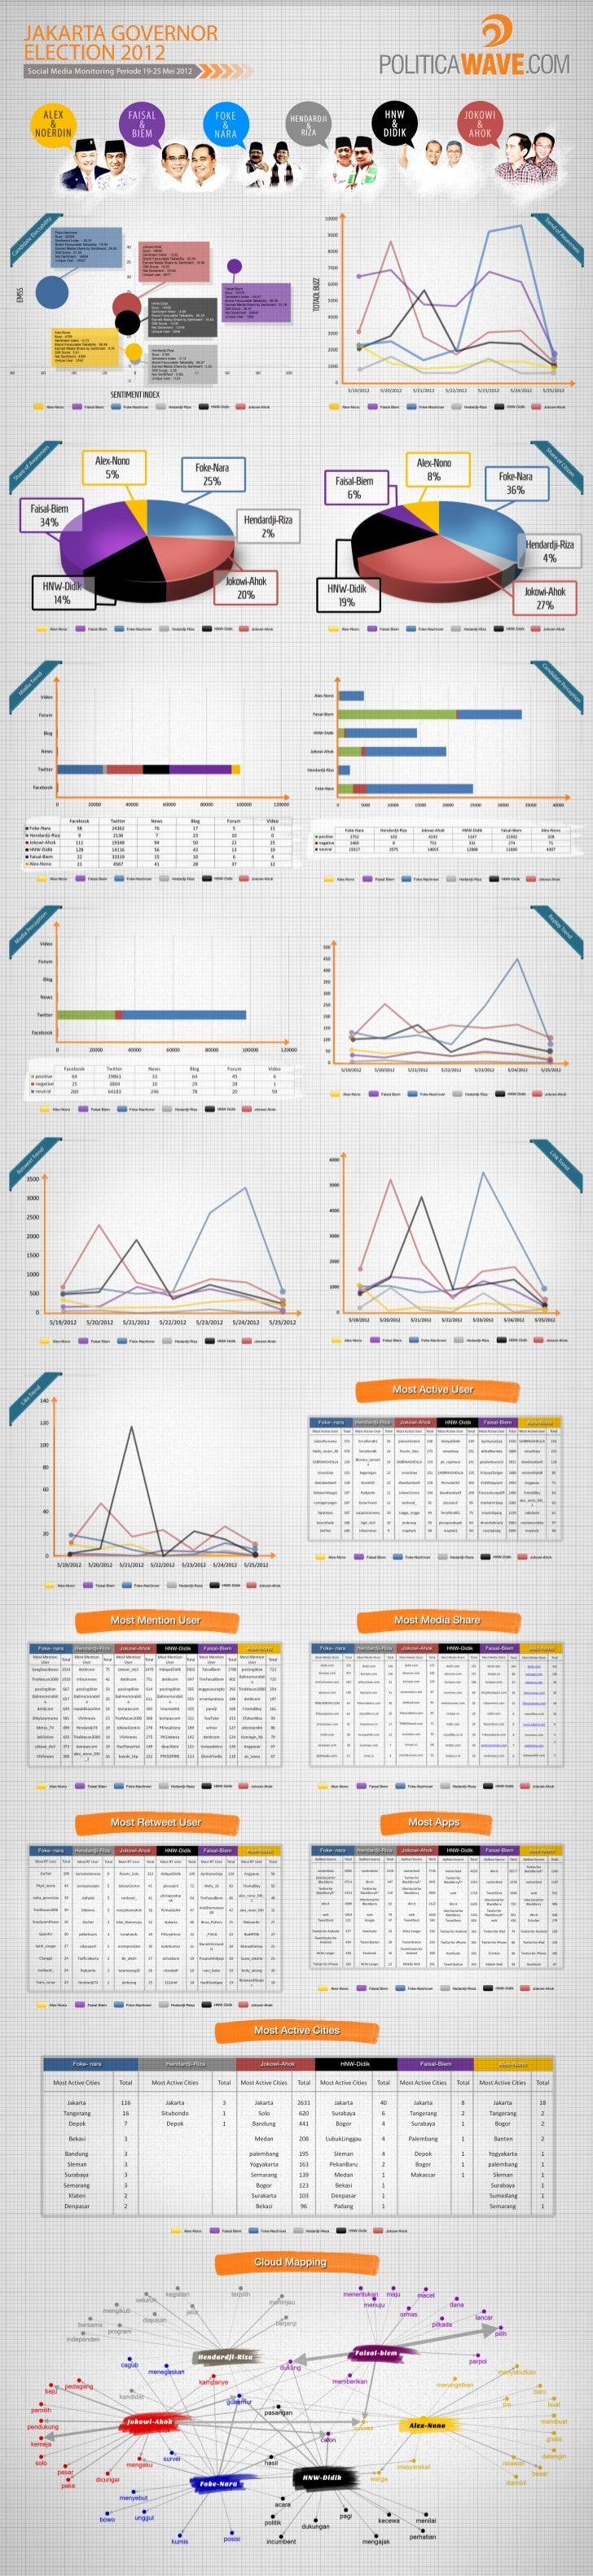 PoliticaWave Infographic [19-25 May 2012]